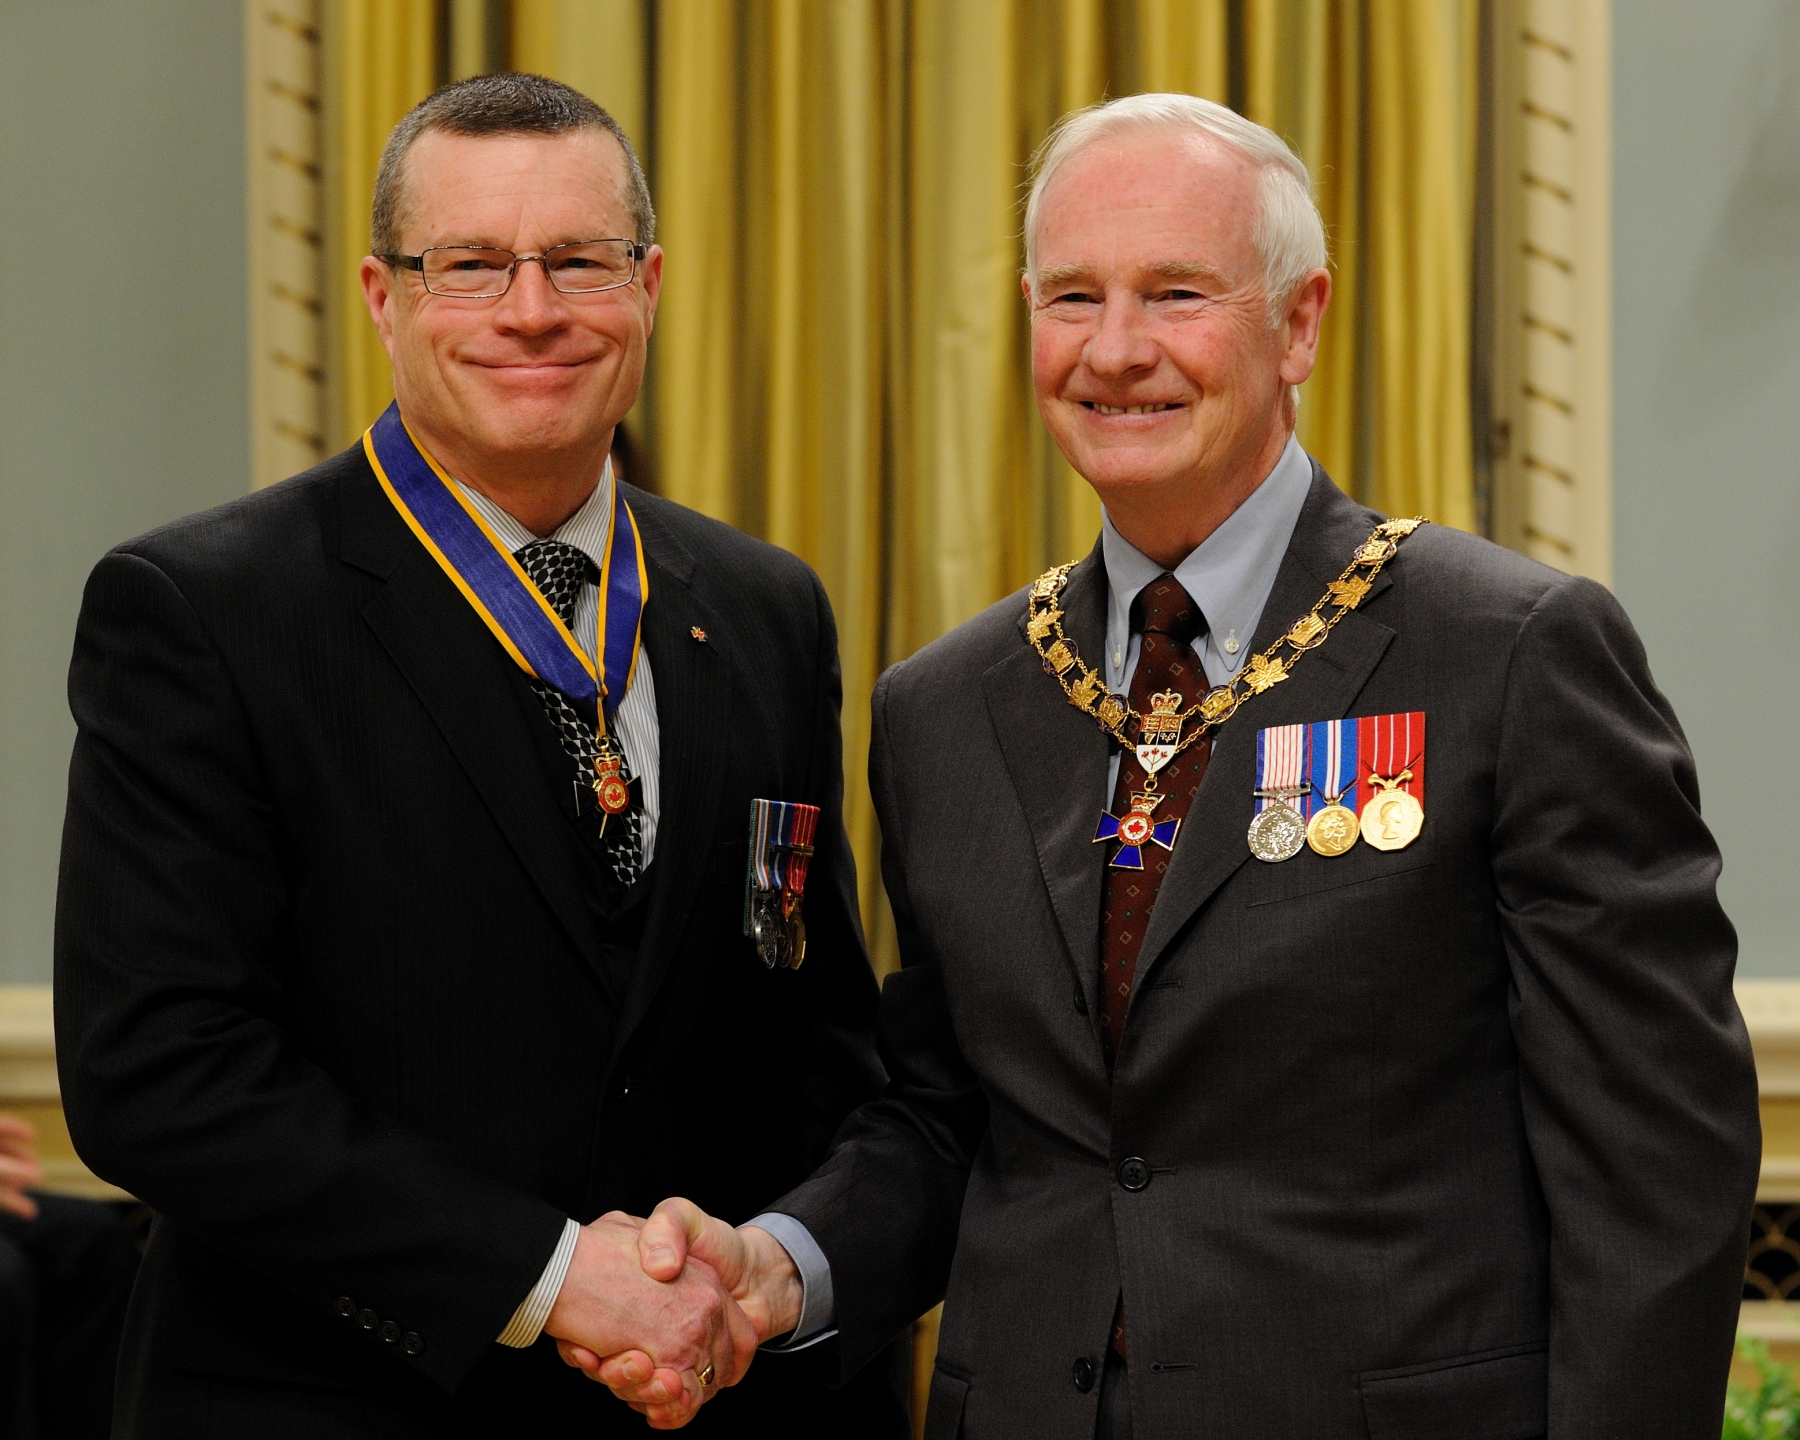 His Excellency presented the Order of Military Merit at the Commander level (C.M.M.) to Brigadier-General David Kettle, C.M.M., C.D., Chaplain General, Ottawa, Ontario.